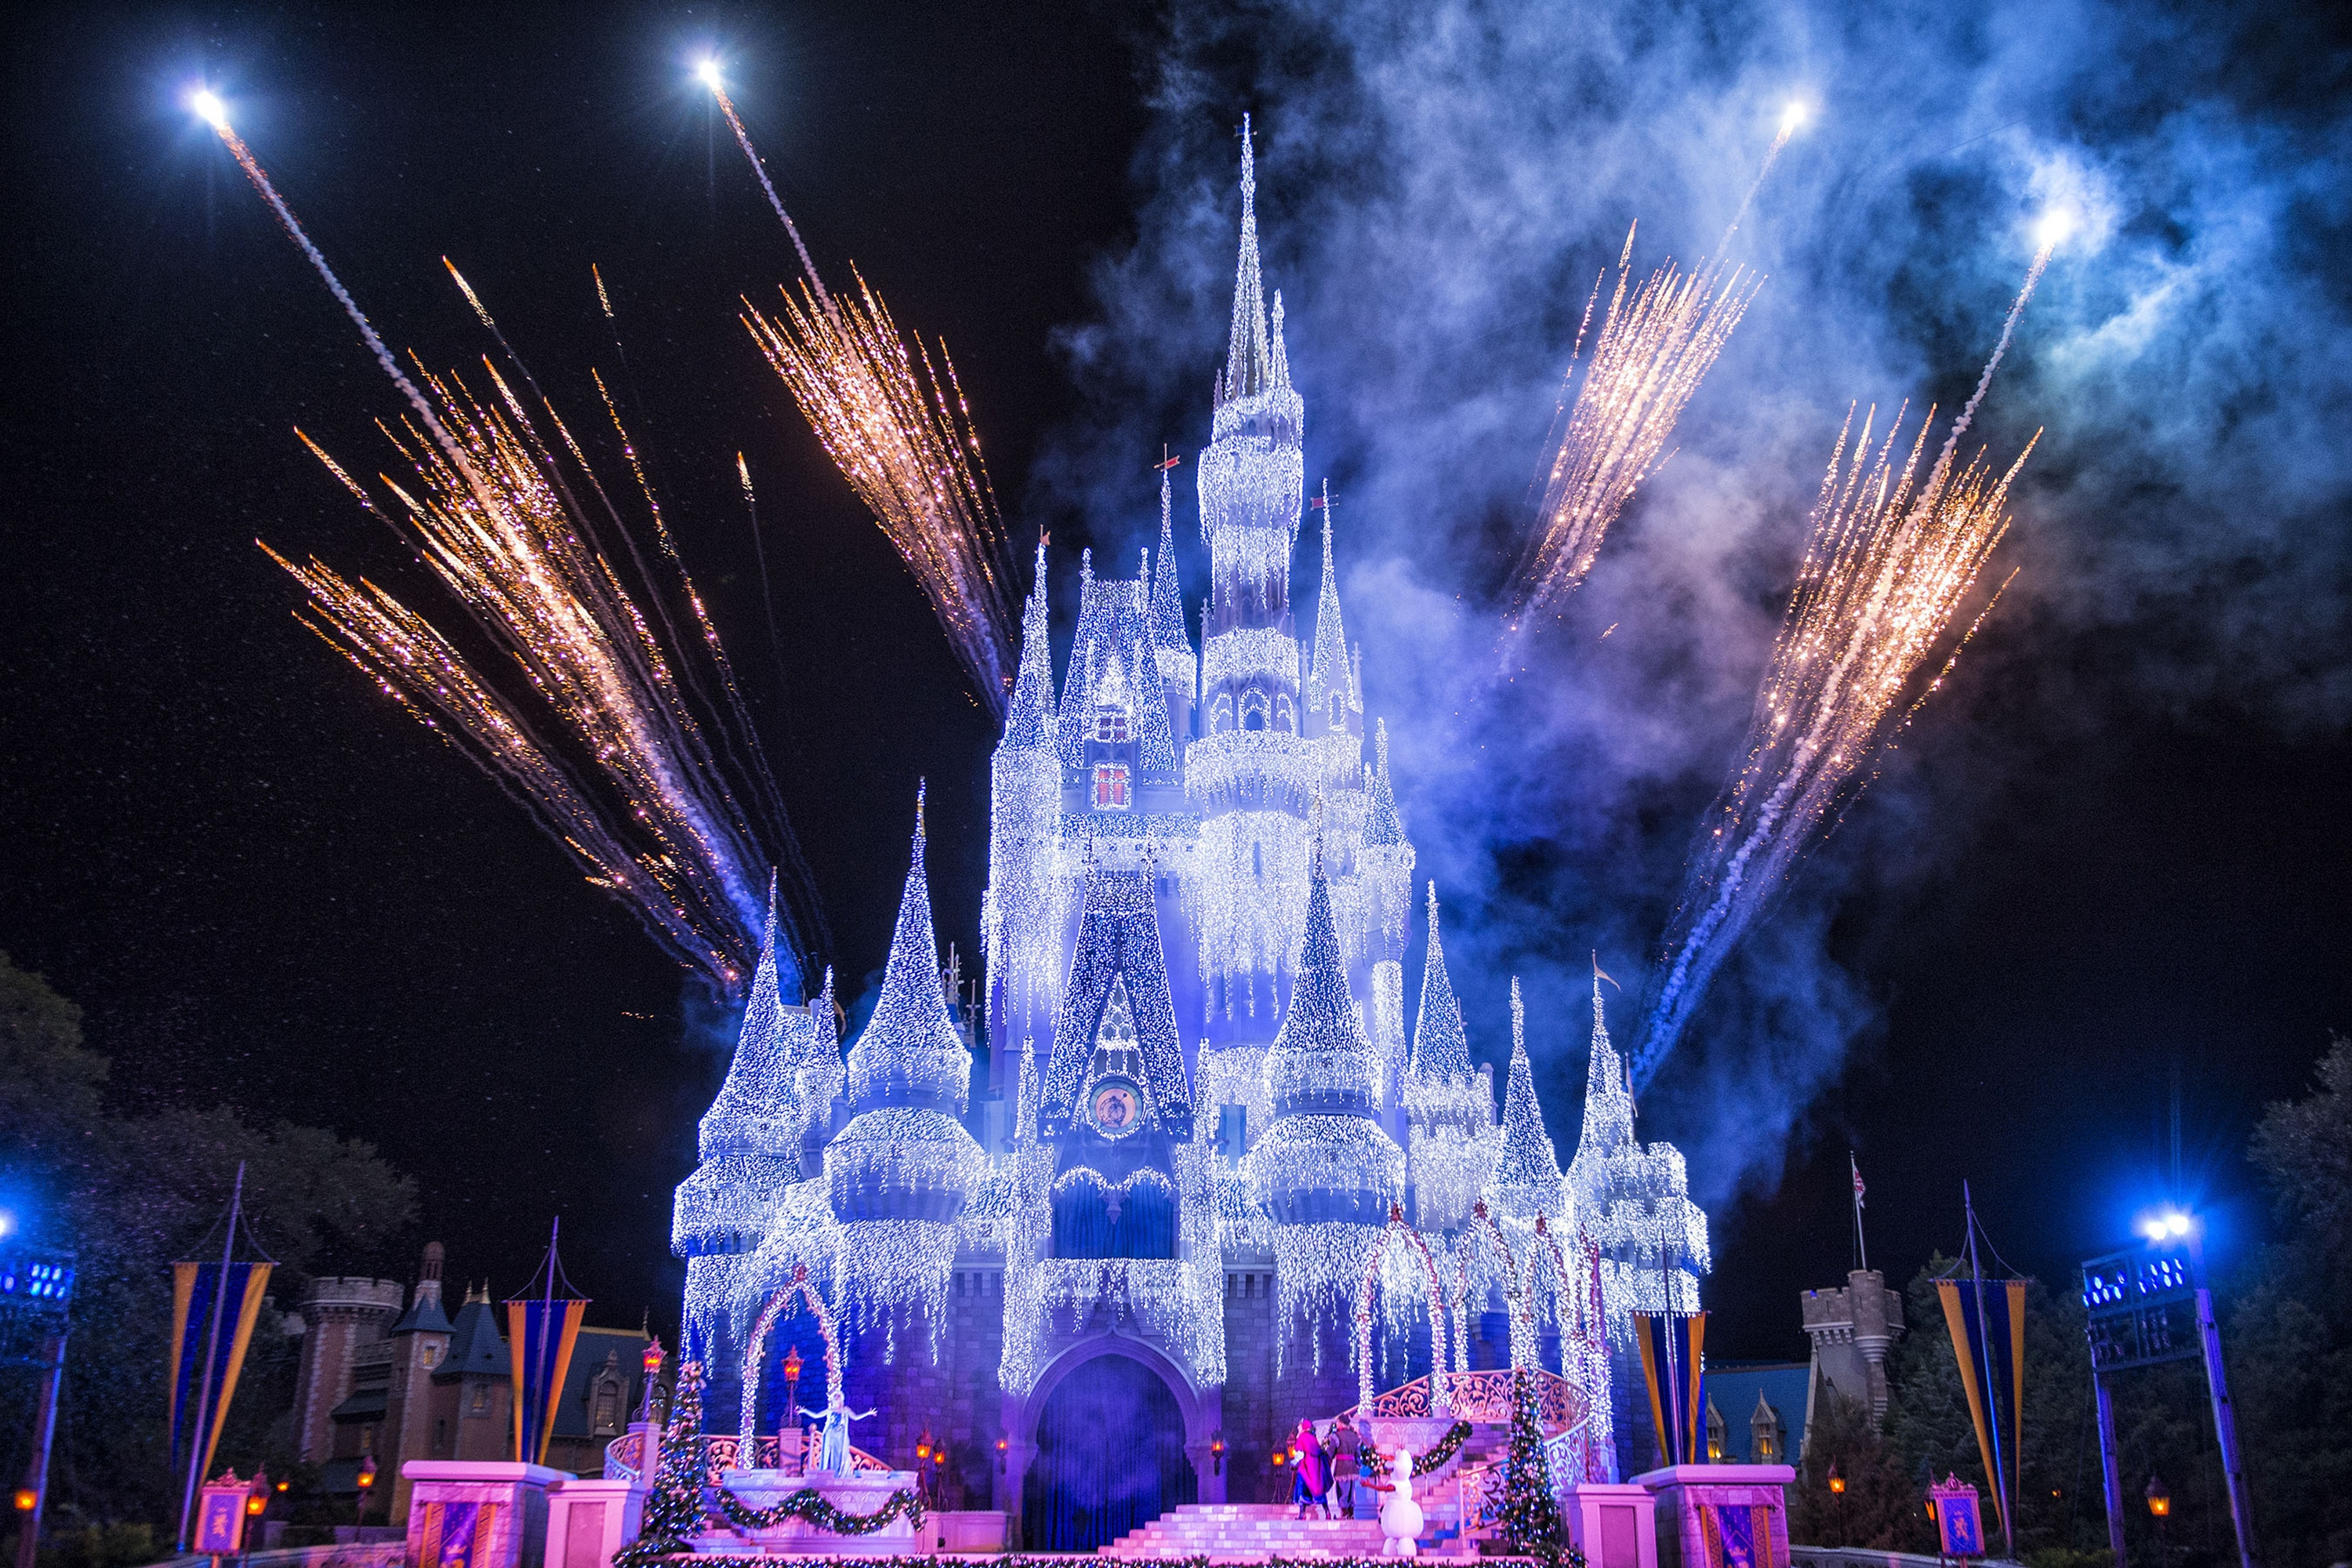 """New in 2014, Queen Elsa from """"Frozen"""" uses her incredible powers to transform Cinderella Castle into a glistening ice palace for the holidays. Joined on the Forecourt stage by Princess Anna, rugged mountain man Kristoff and Olaf, the summer-loving snowman, Elsa bestows this gift onto the people of Magic Kingdom with colorful snowflakes, fireworks and a special effects spectacle bathing the castle in 200,000 shimmering white lights. Magic Kingdom guests are treated nightly to the dramatic """"A Frozen Holiday Wish"""" stage show. (Matt Stroshane/Disney/TNS)"""